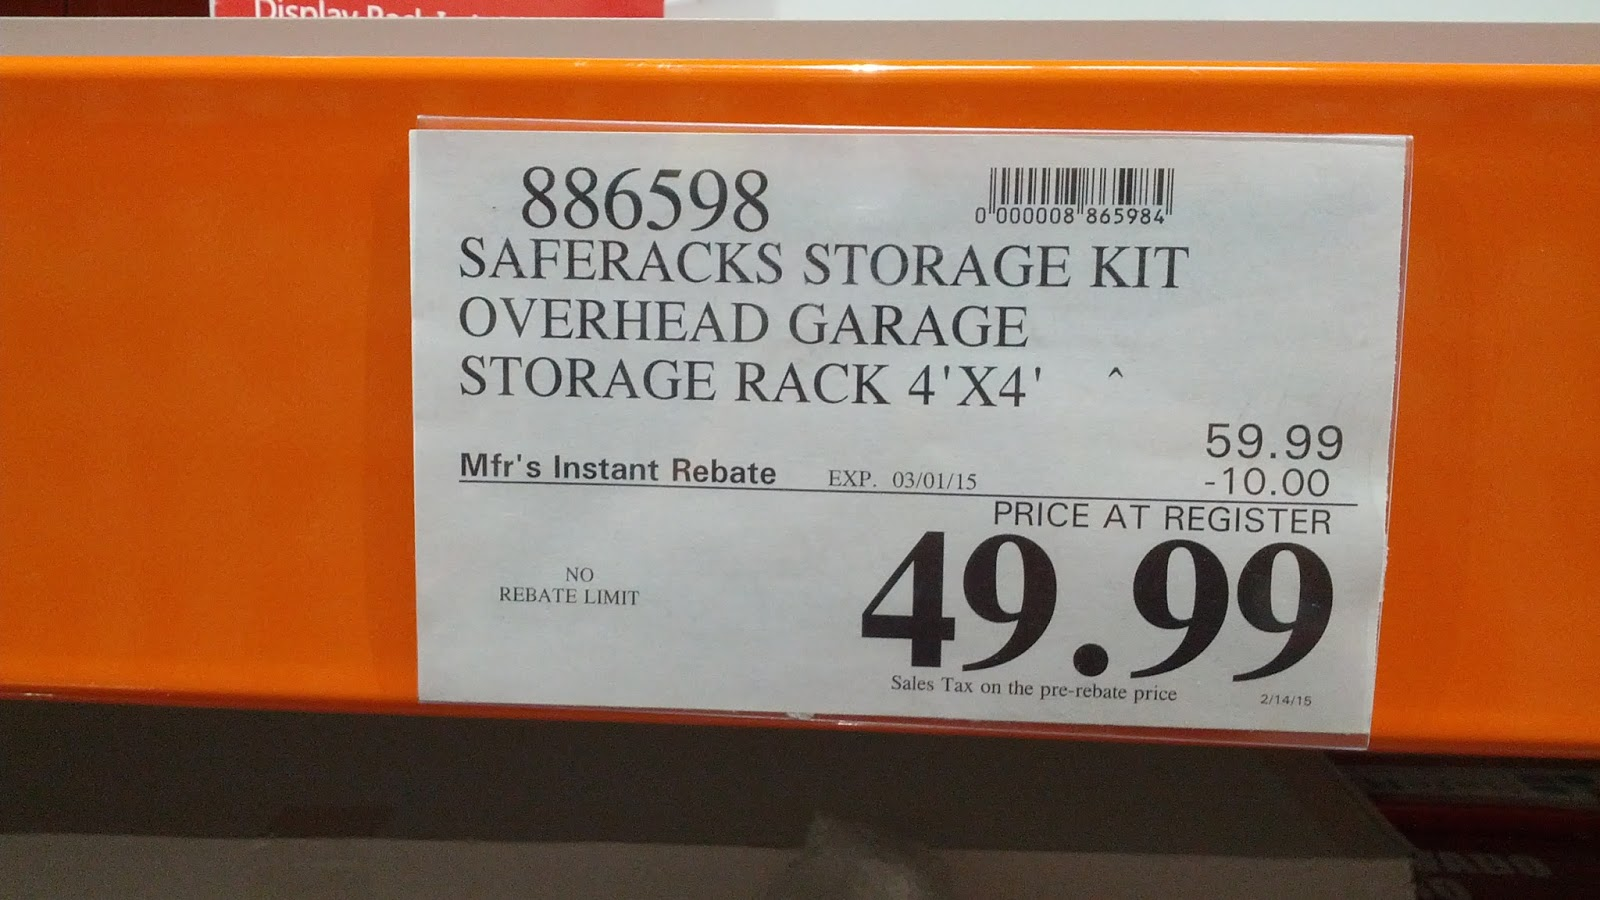 Garage Storage Costco Saferacks Storage Kit Steel Overhead Garage Rack Costco Weekender